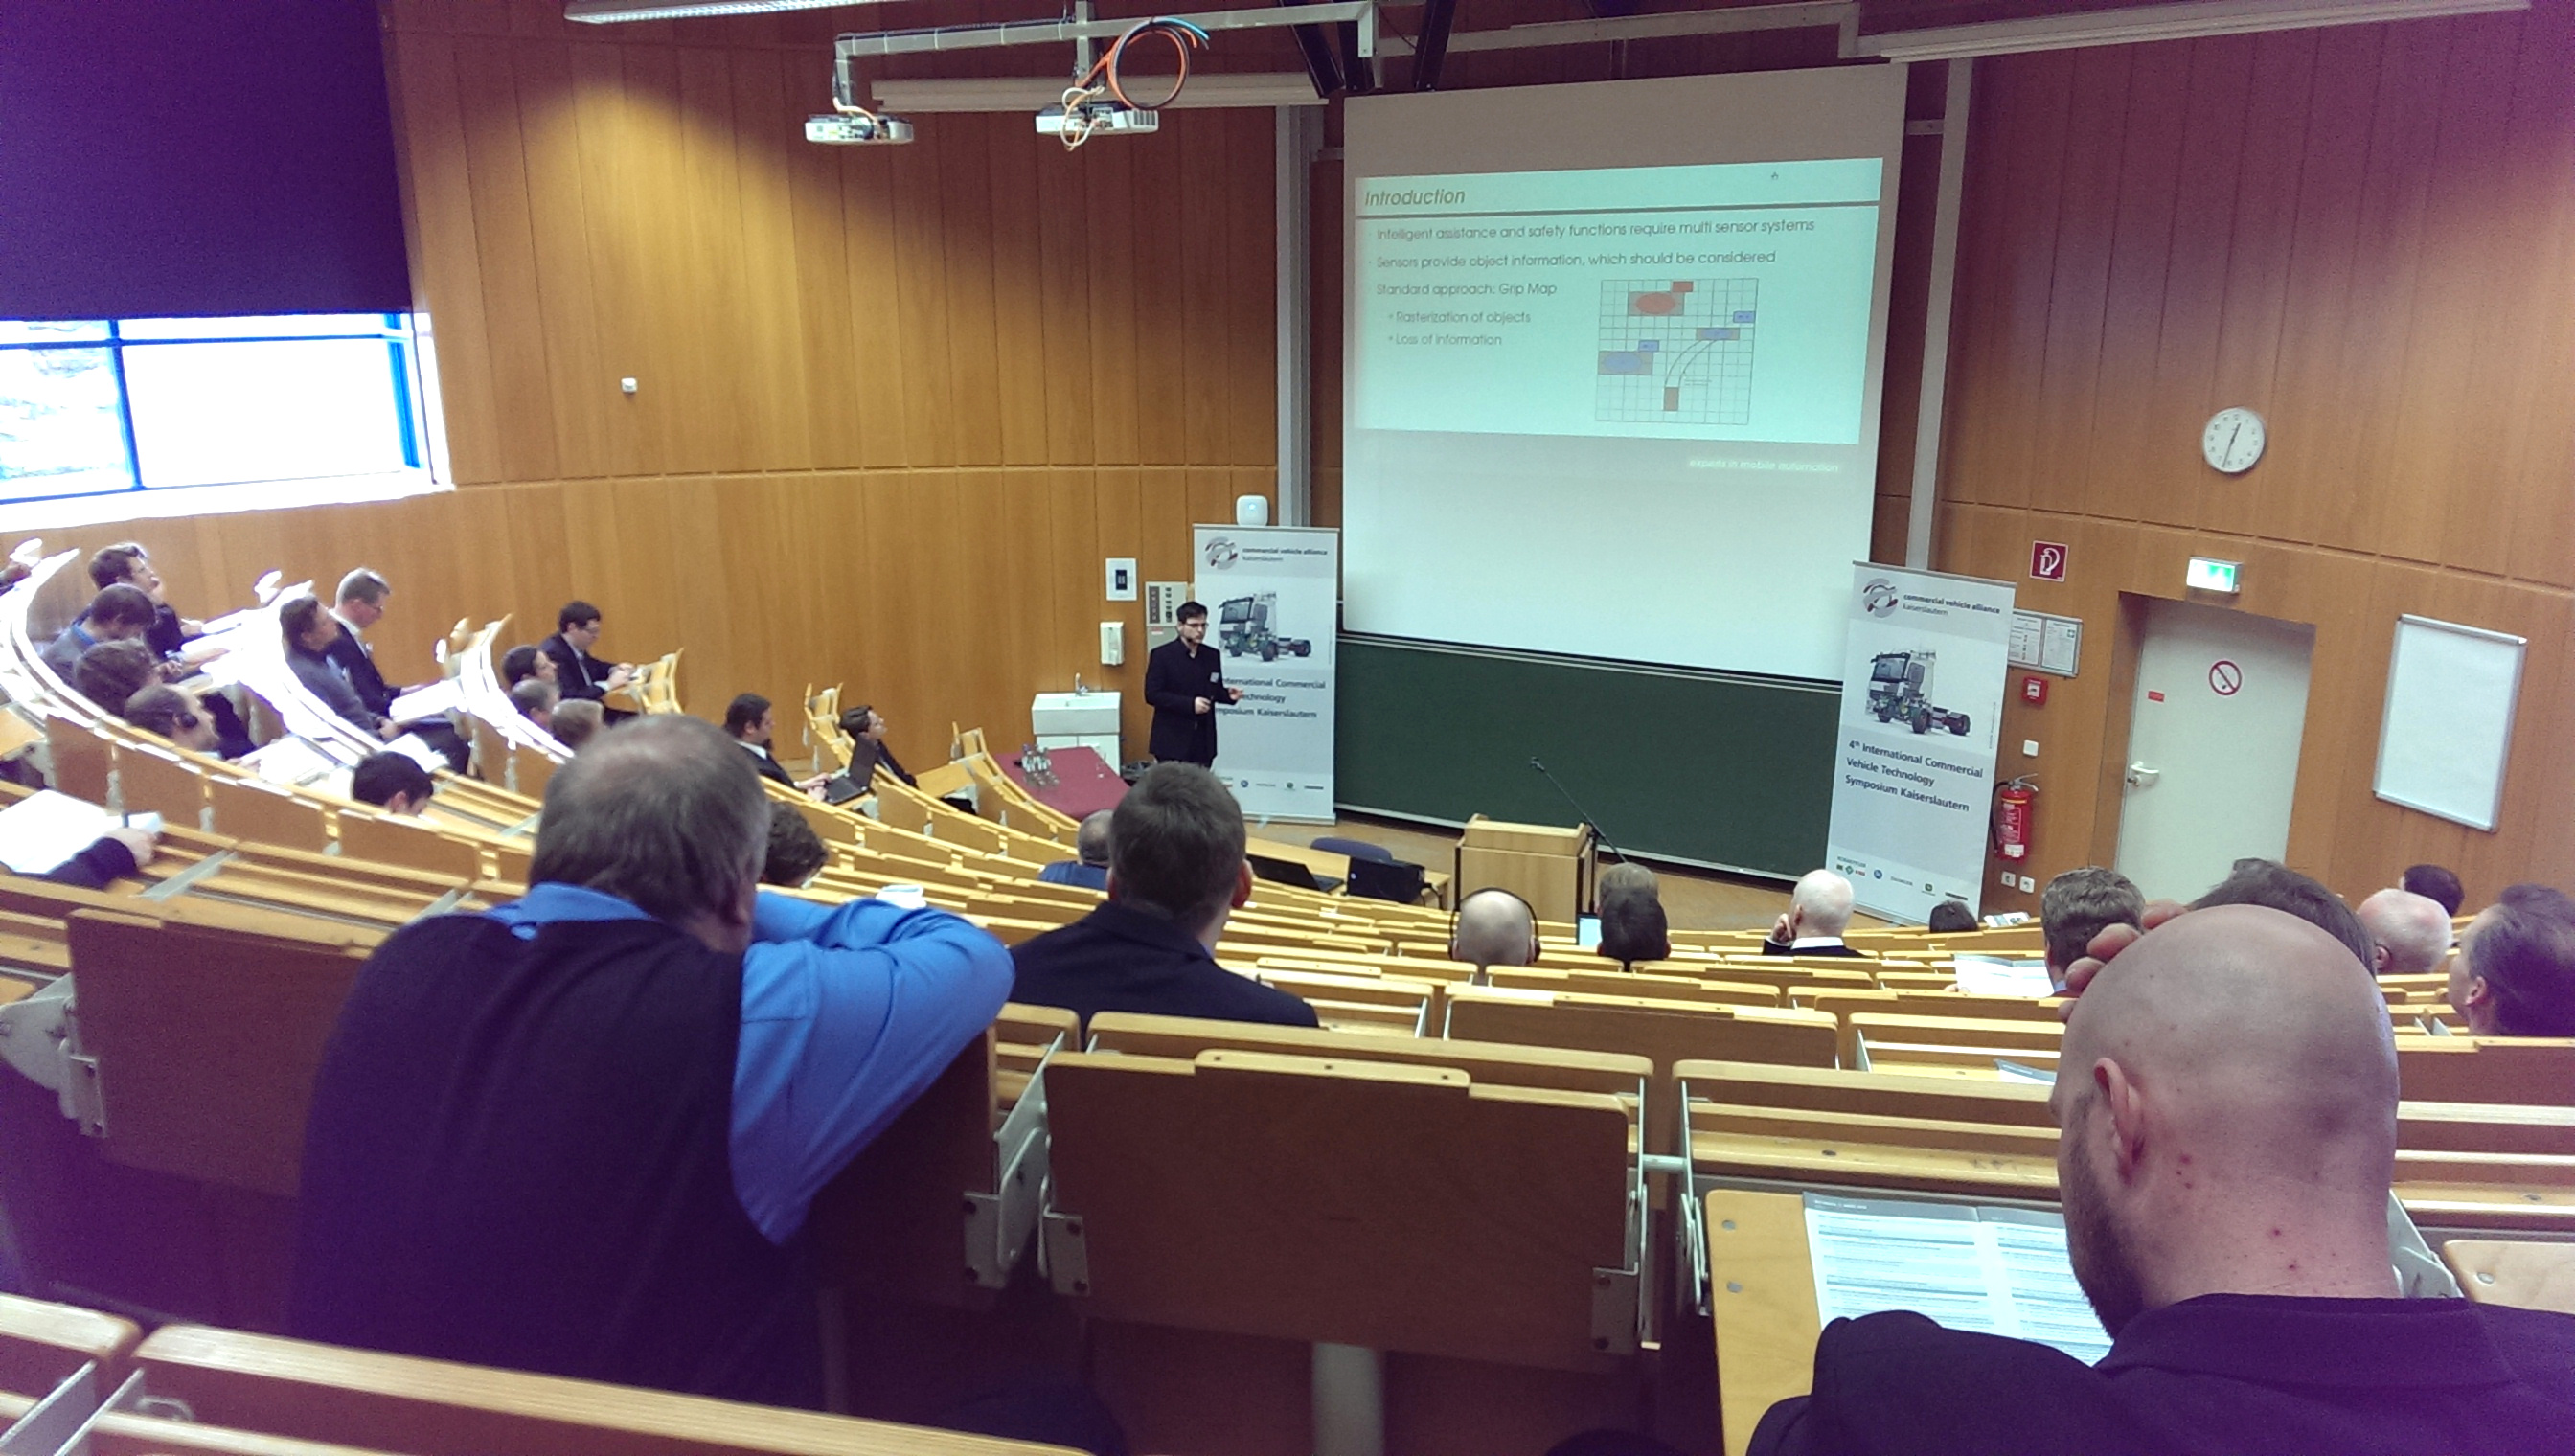 """Head of development Dr. Jochen Hirth giving the lecture """"Sensor data representation – A framework for processing, combining, and visualizing information from various sensor systems"""""""